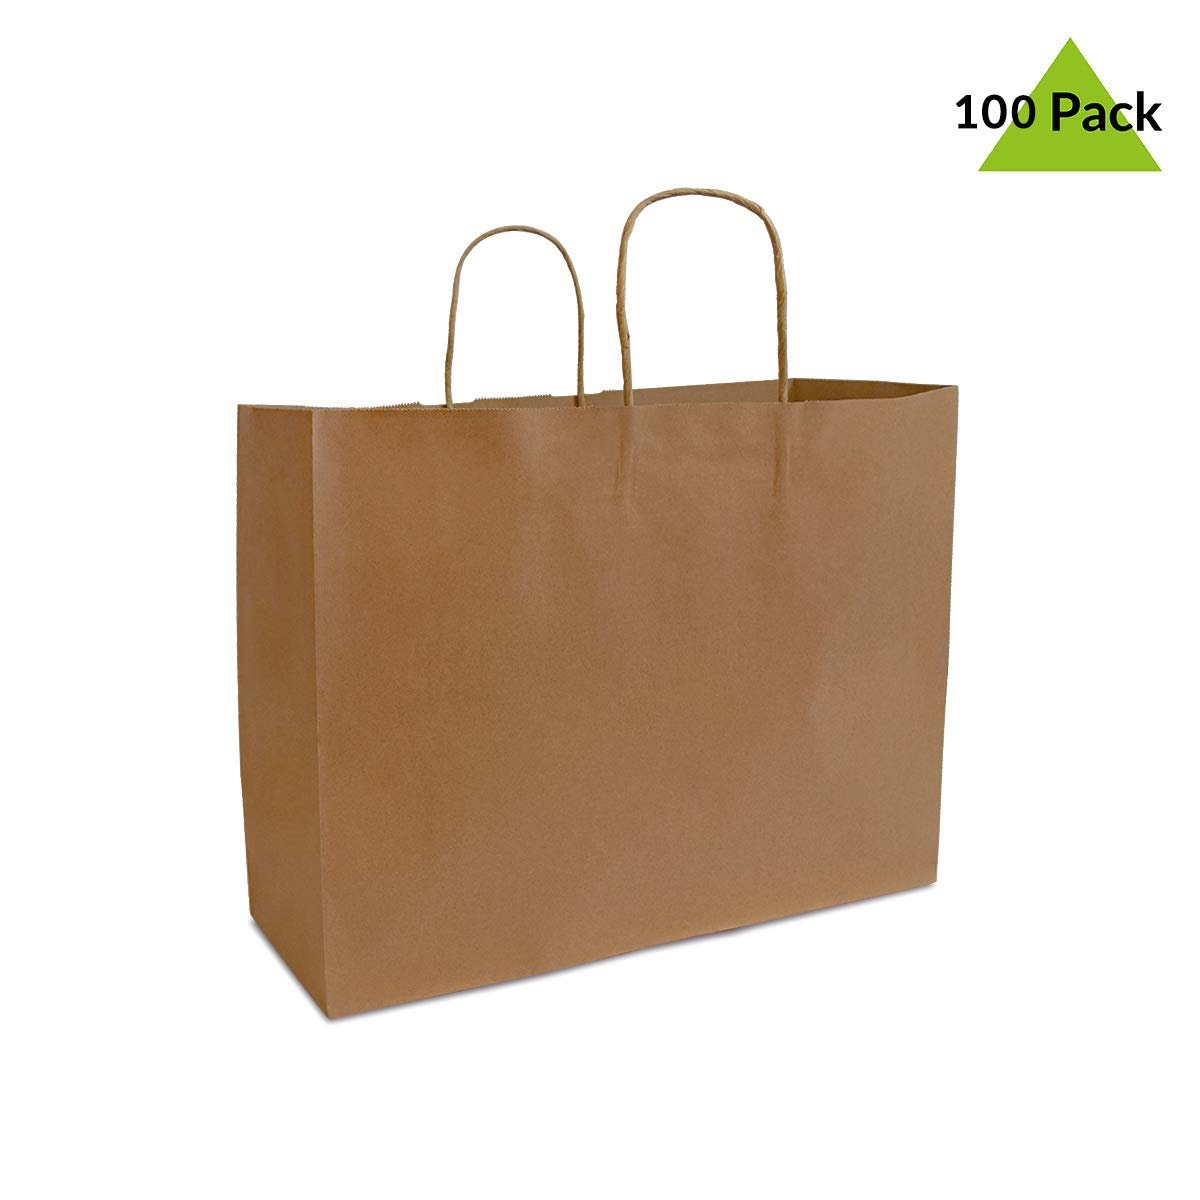 100 Pcs Recycled Kraft Paper Shopping Bags Paper Bags